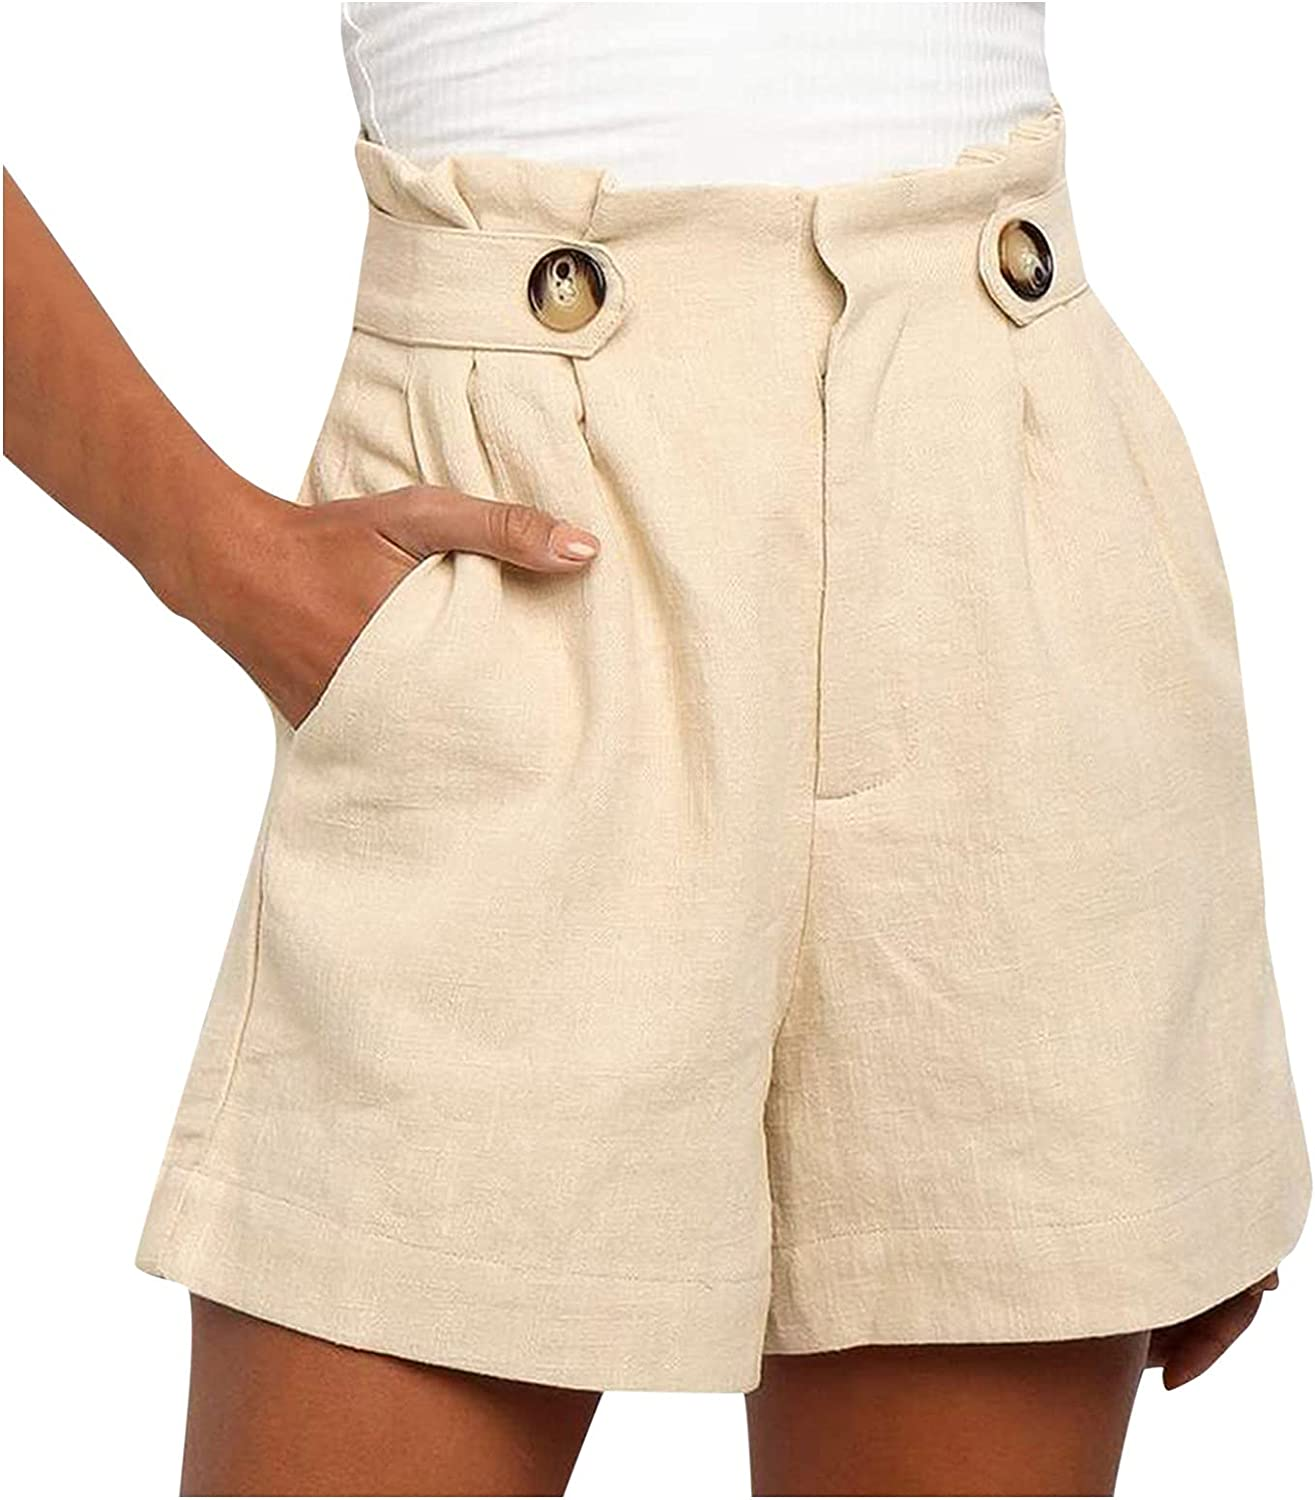 KEJINKCSEE Popular product Women Casual Superior Shorts with El Pockets Waist High Button